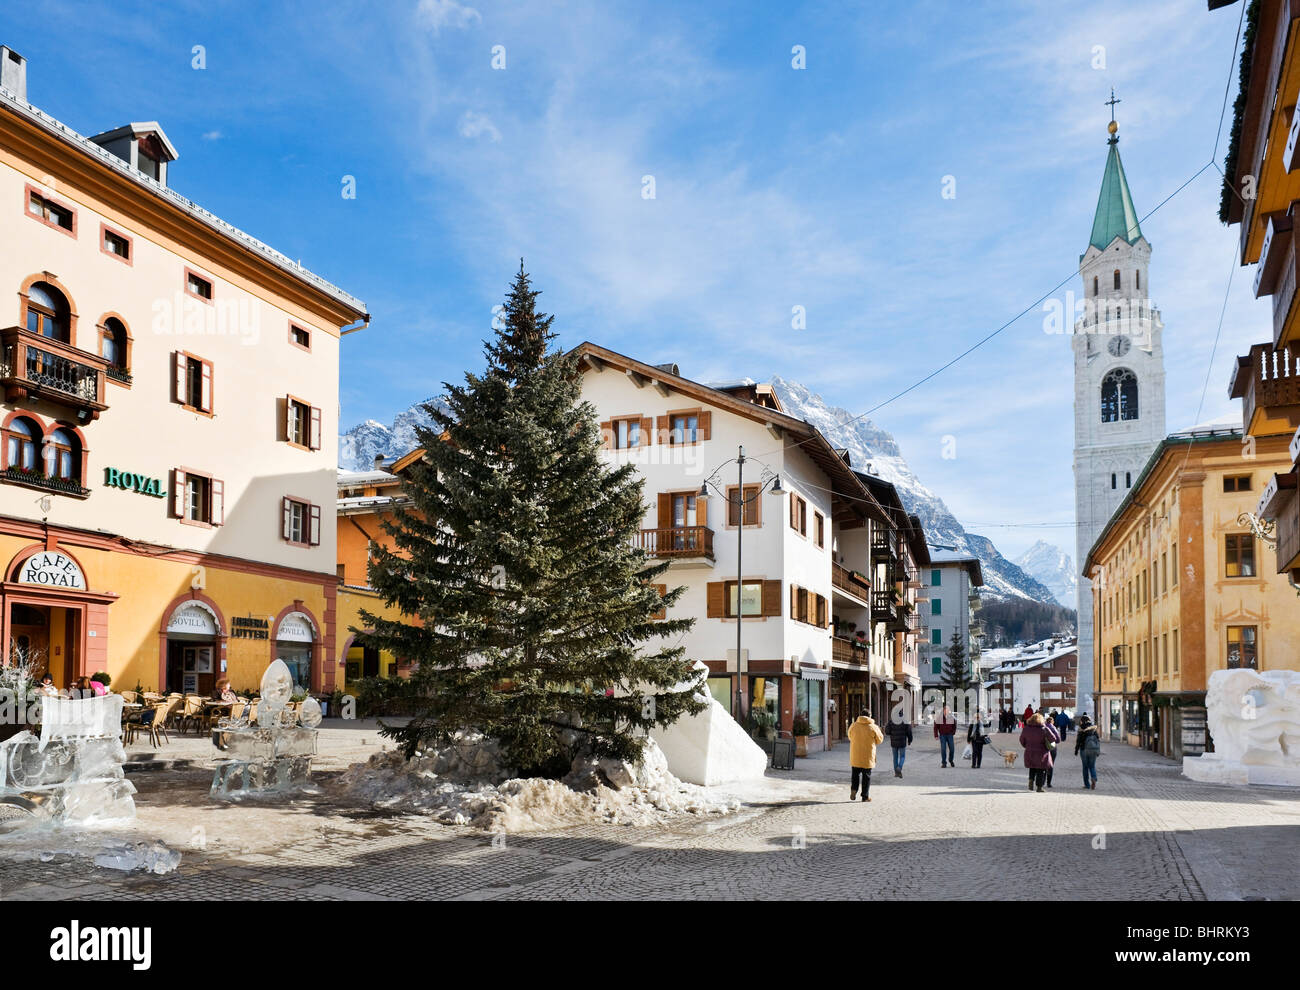 Corso Italia, the main street in the town centre with the Hotel Royal to the left, Cortina d'Ampezzo, Dolomites, - Stock Image